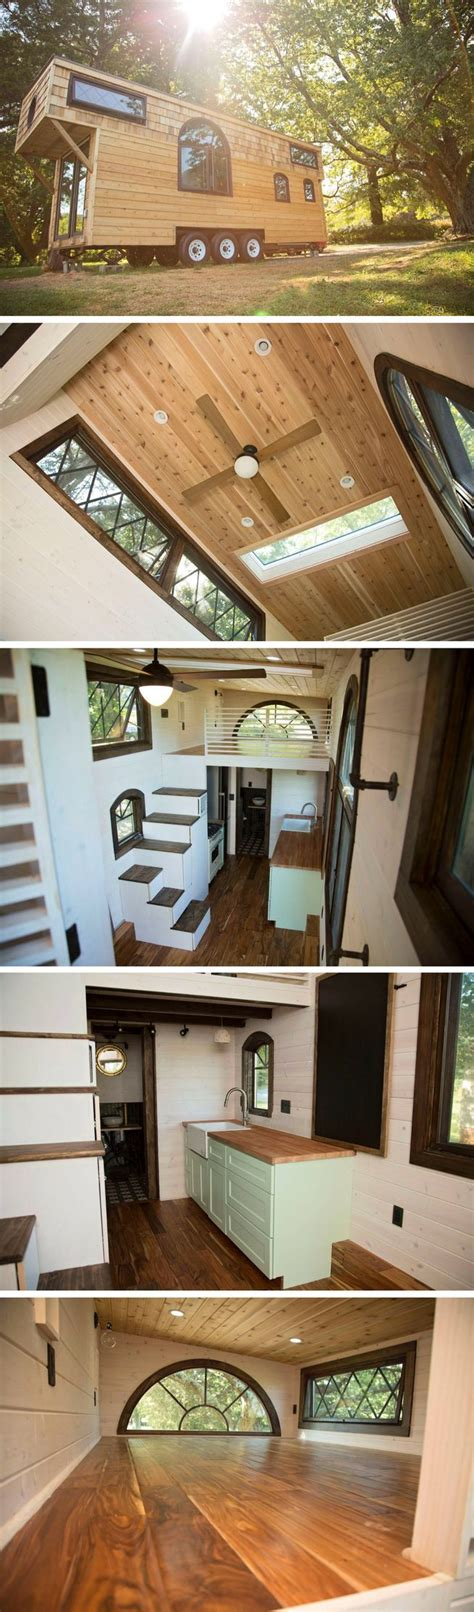 tiny house layout 17 best ideas about tiny house plans on small